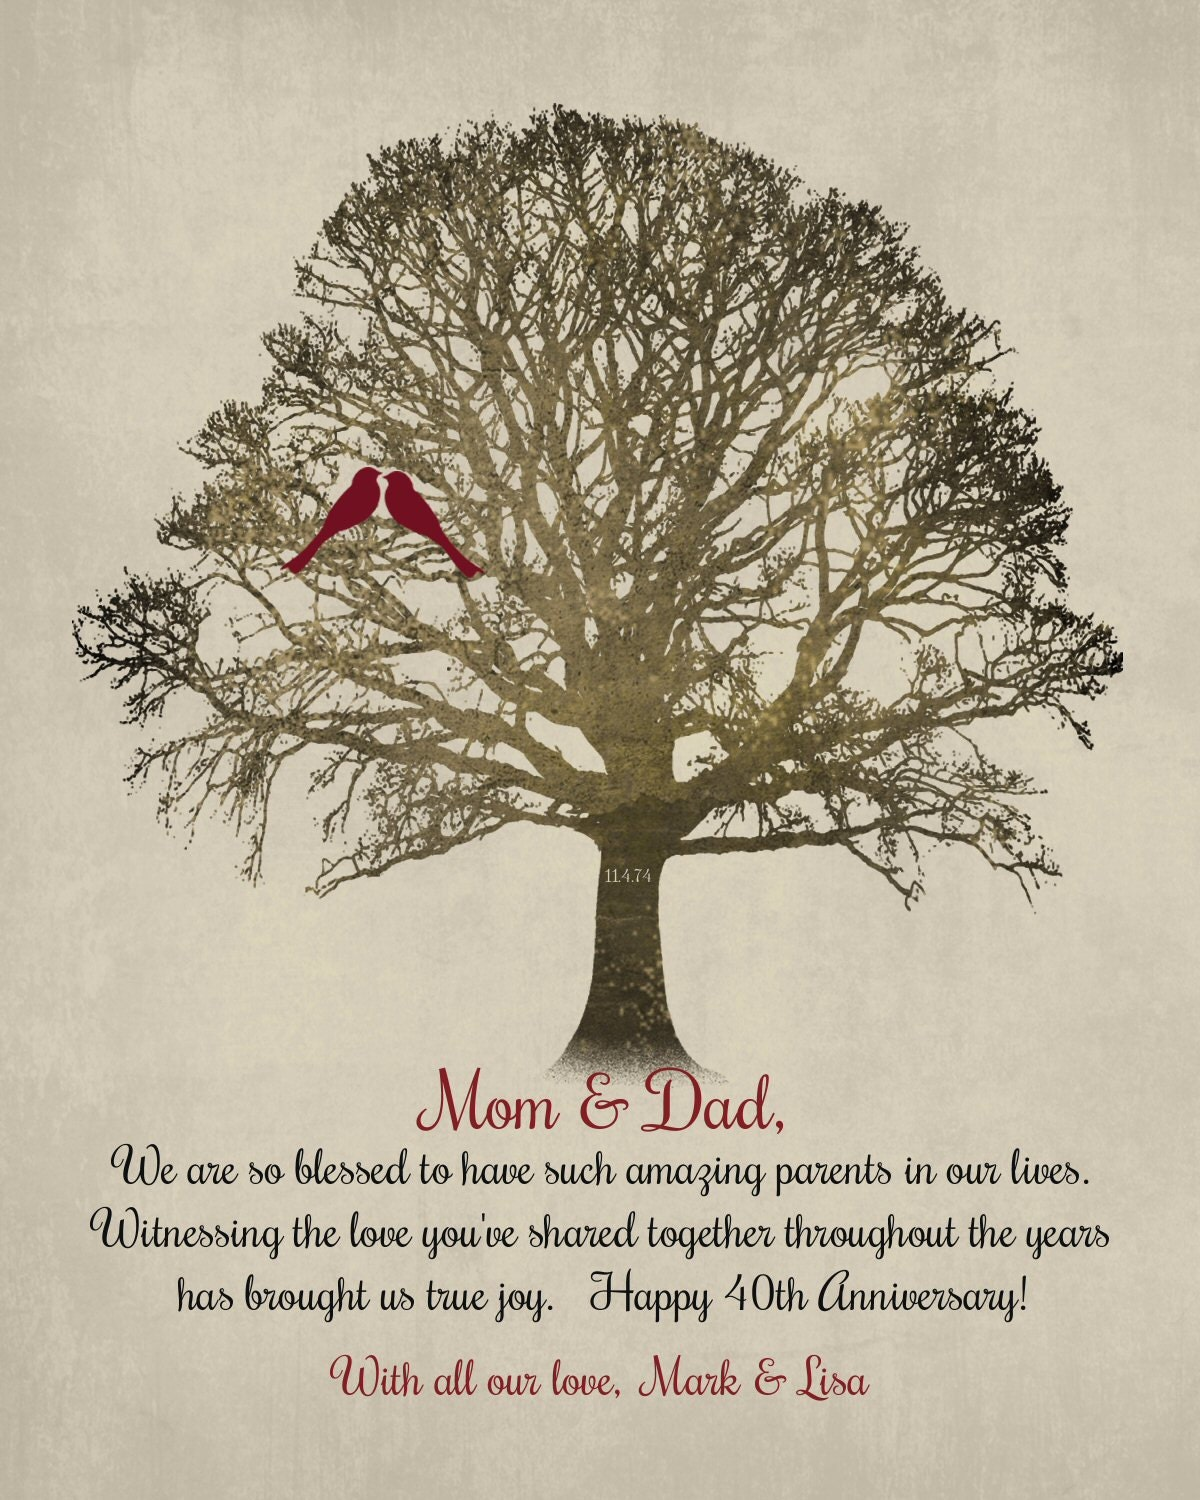 41 Year Anniversary Quotes: 40th Anniversary Parents Gift Mom Dad 40 Years Family Tree